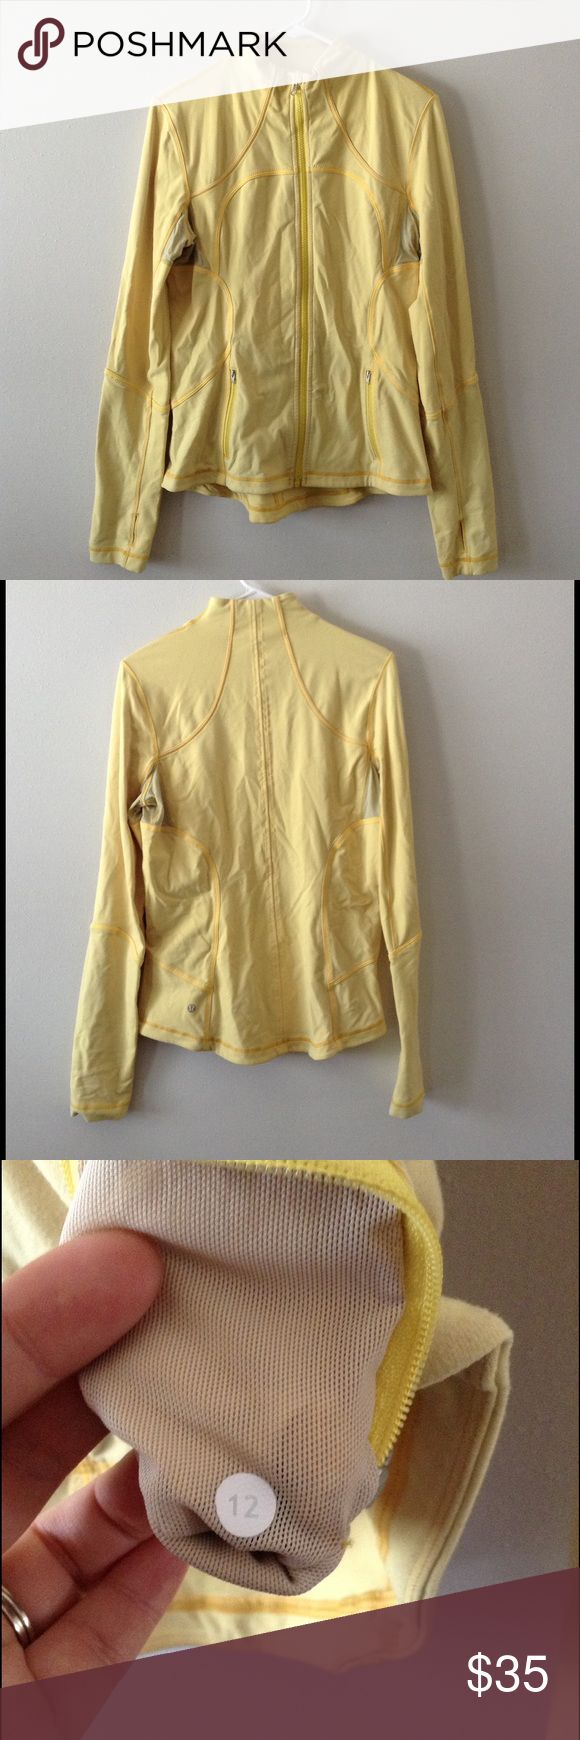 Lululemon yellow Define jacket 🚨PRICE IS FIRM and priced to sell🚨. Used and in good condition. There are some signs of wear such as normal laundering & fading in color. However there are no rips, stains or major flaws. Still lots of life left. Has thumb holes as shown in last pic. lululemon athletica Jackets & Coats